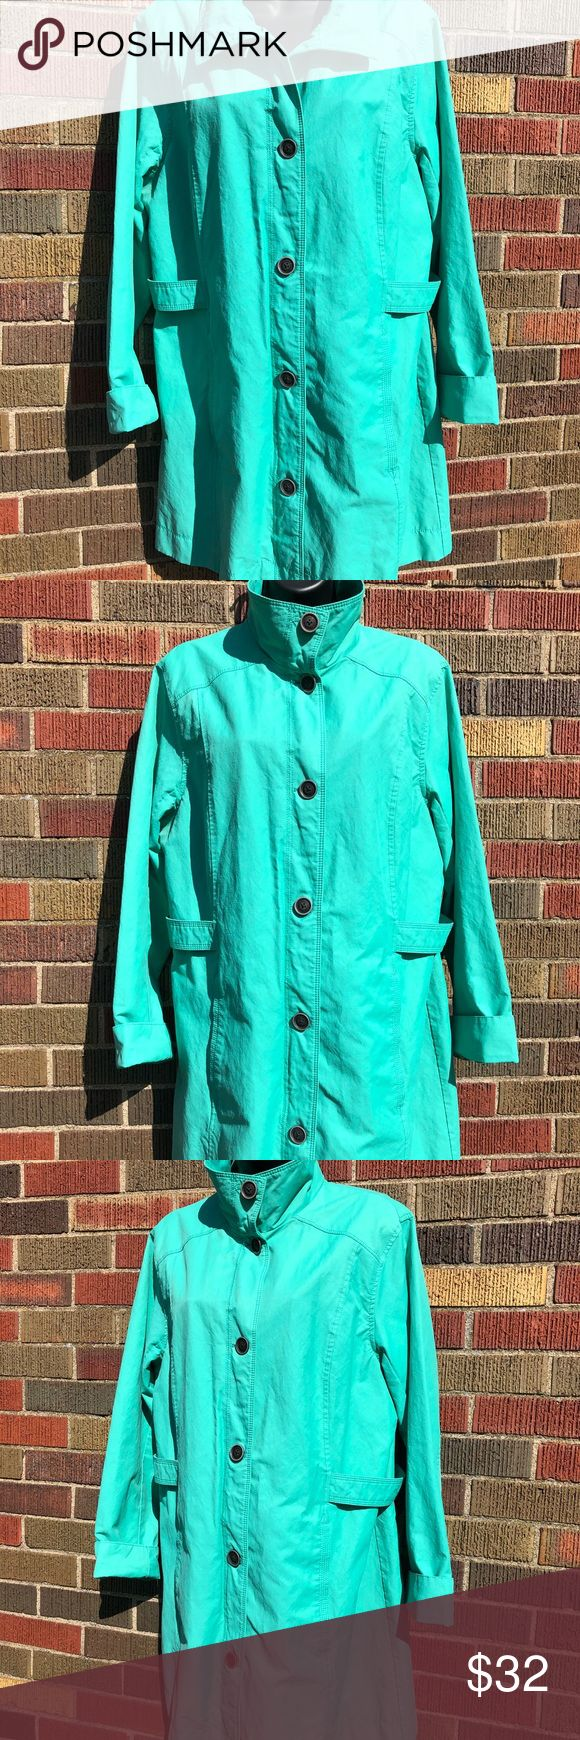 """Eddie Bauer Green Trench Coat Women's size XL Eddie Bauer pastel green trench coat. Women's size XL. 6 front buttons, 2 front pockets. In excellent used condition.  Shell is 64% cotton, 36% Nylon. Lining is 100% polyester.  Measurements (approx): 23"""" Pit to Pit, 25"""" Sleeves from shoulder seam to cuff, 34.5"""" long from top of shoulder seam to bottom of coat in front.  BUNDLE SPECIAL: 15% off 3 or more items from my closet! Eddie Bauer Jackets & Coats Trench Coats"""